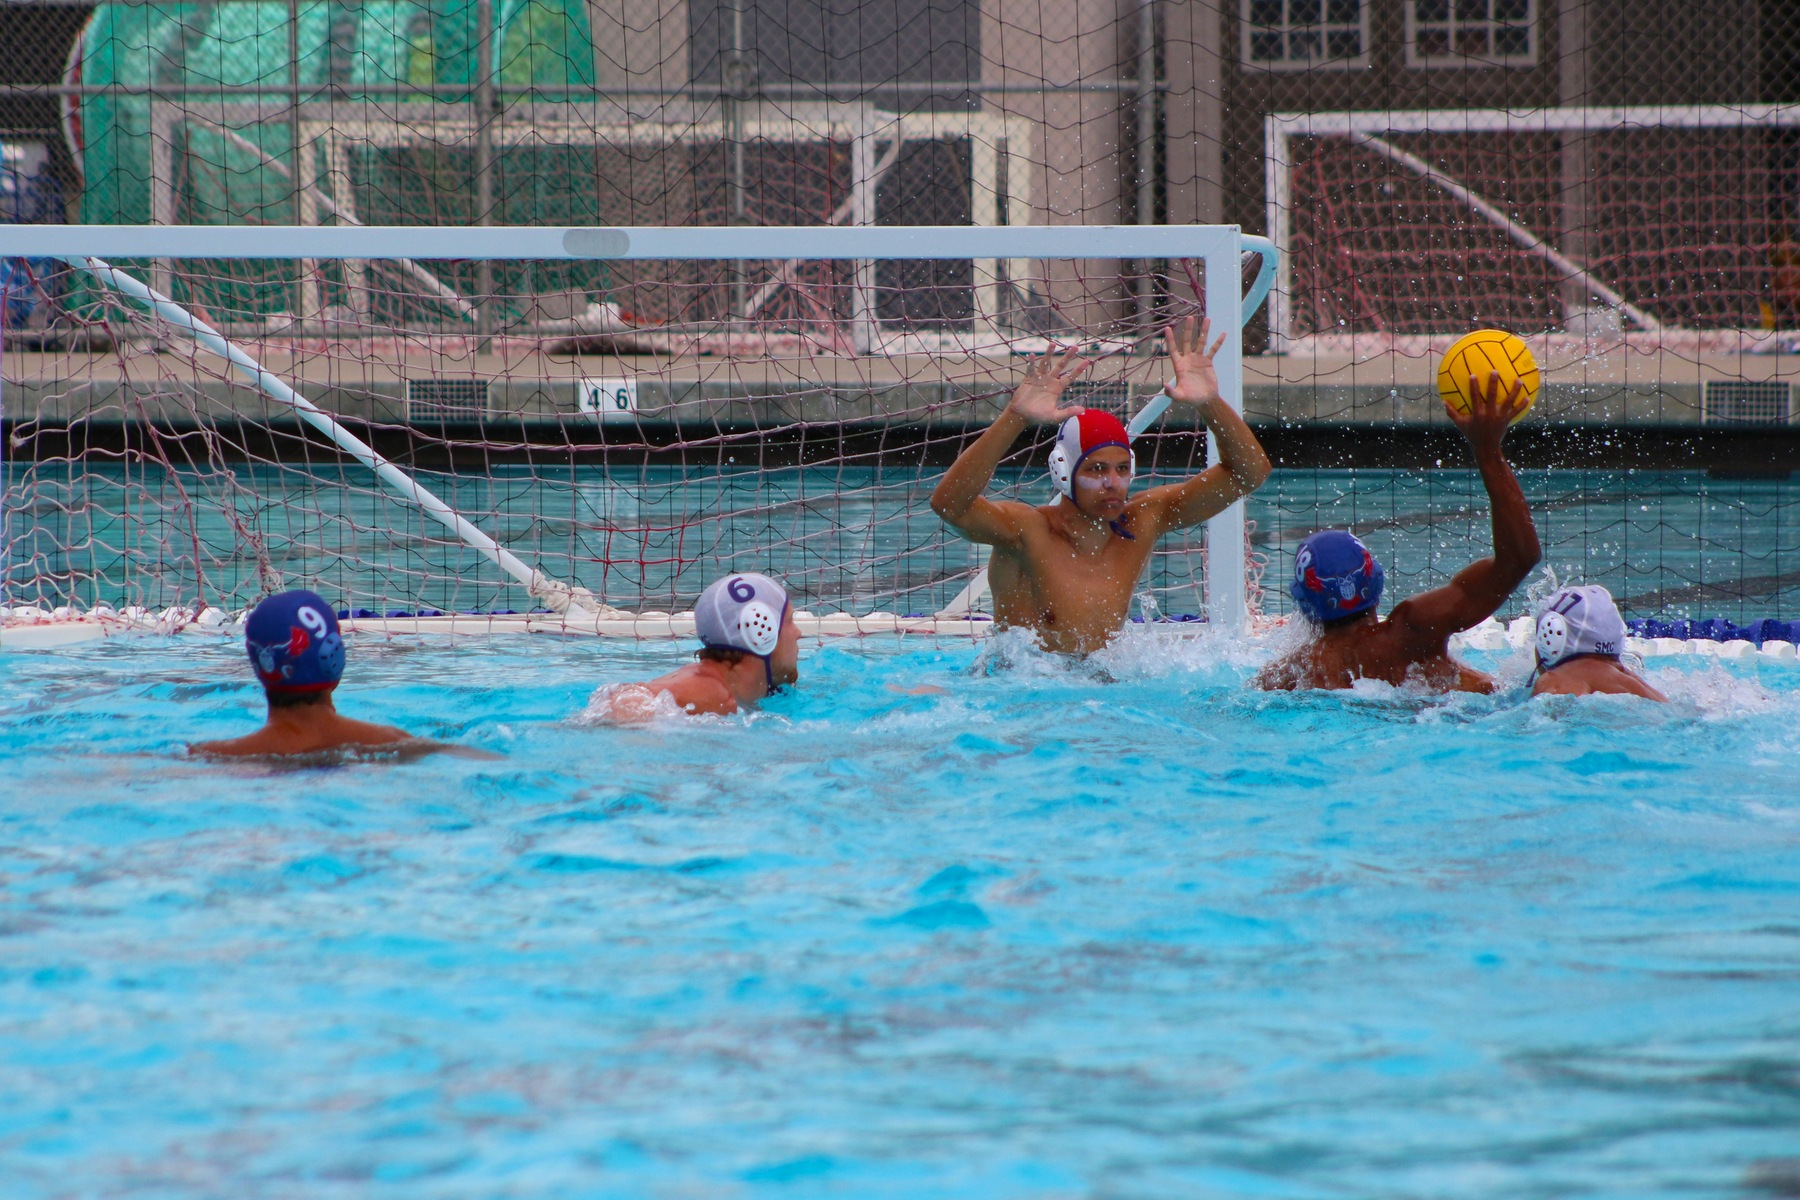 Jordan Scott flexes on the Santa Monica goalie. Scott put the shot into the back of the net. Image: Chris Peterson